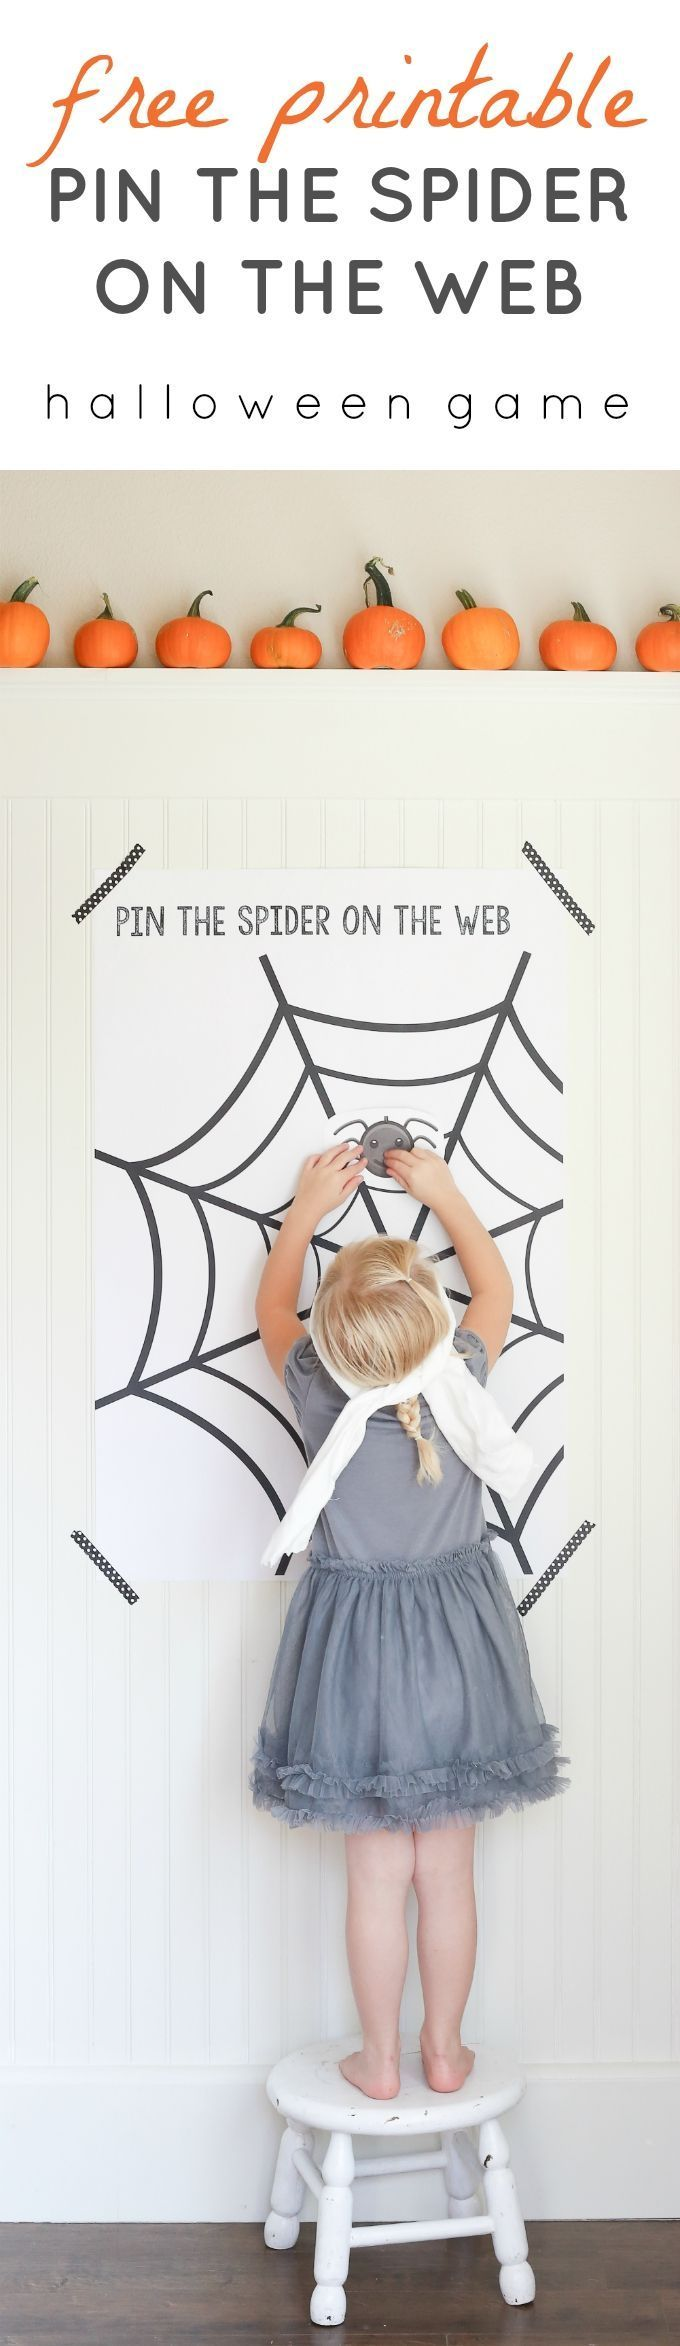 "Free Printable ""Pin The Spider on the Web"" Game. A Halloween twist to the classic Pin the Tail on the Donkey by Ella Claire."